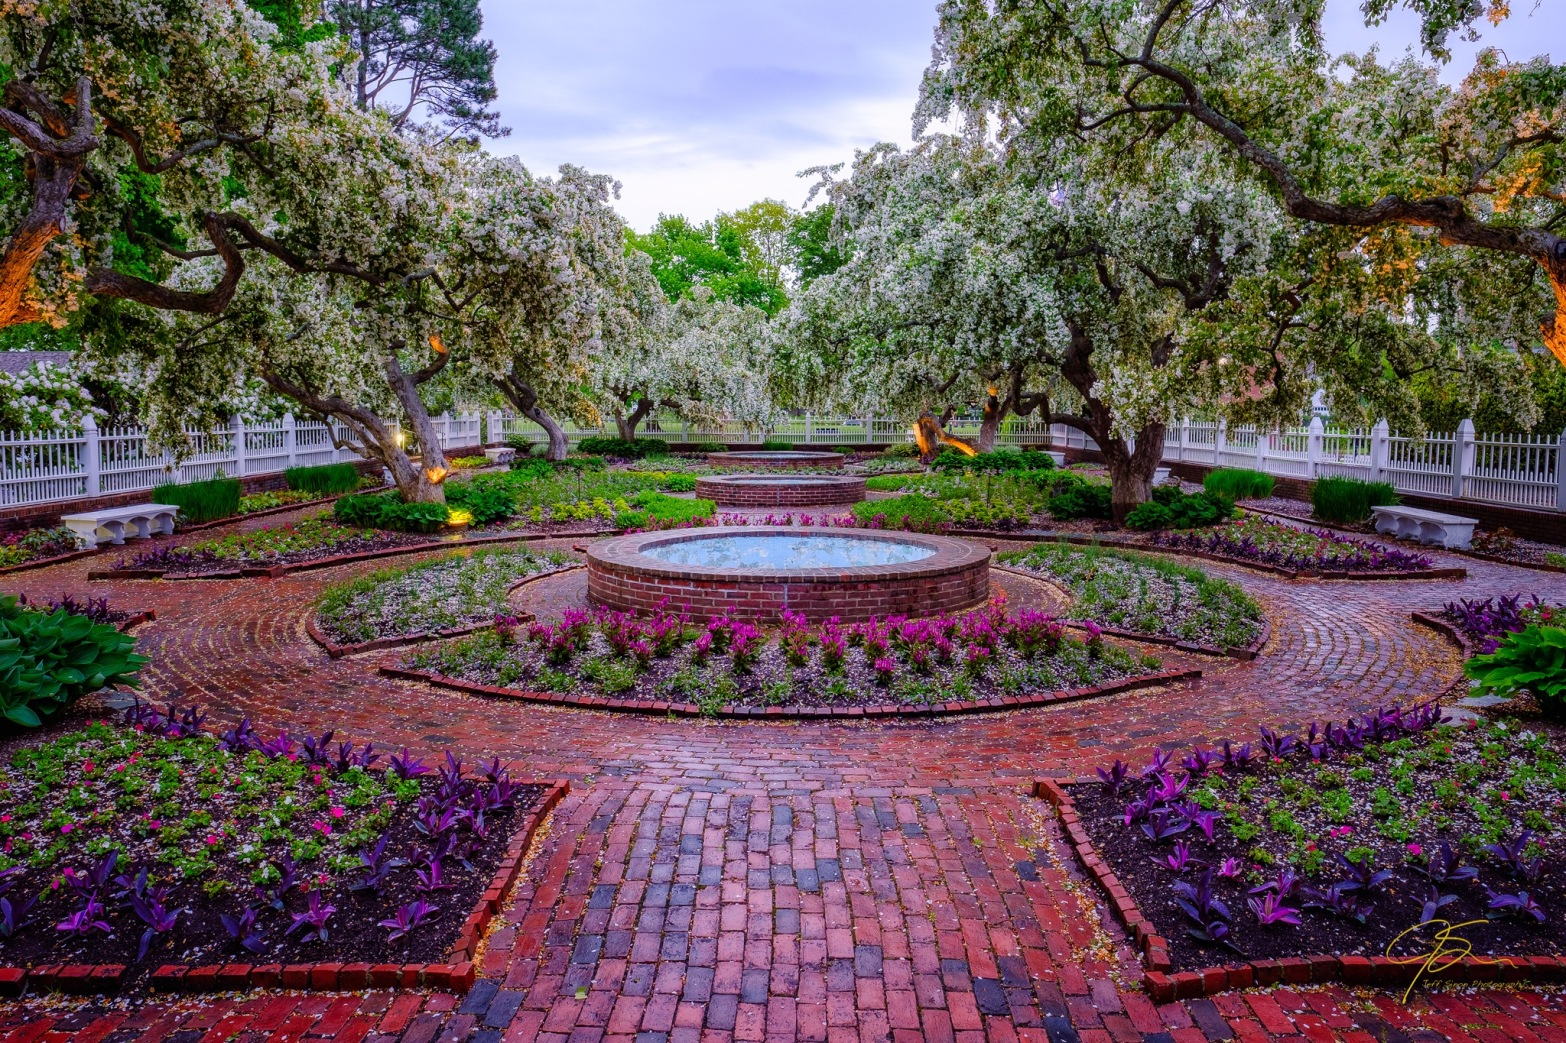 the beautiful gardens in prescott park, brick pathways, circular fountains, and flowers in the beds,